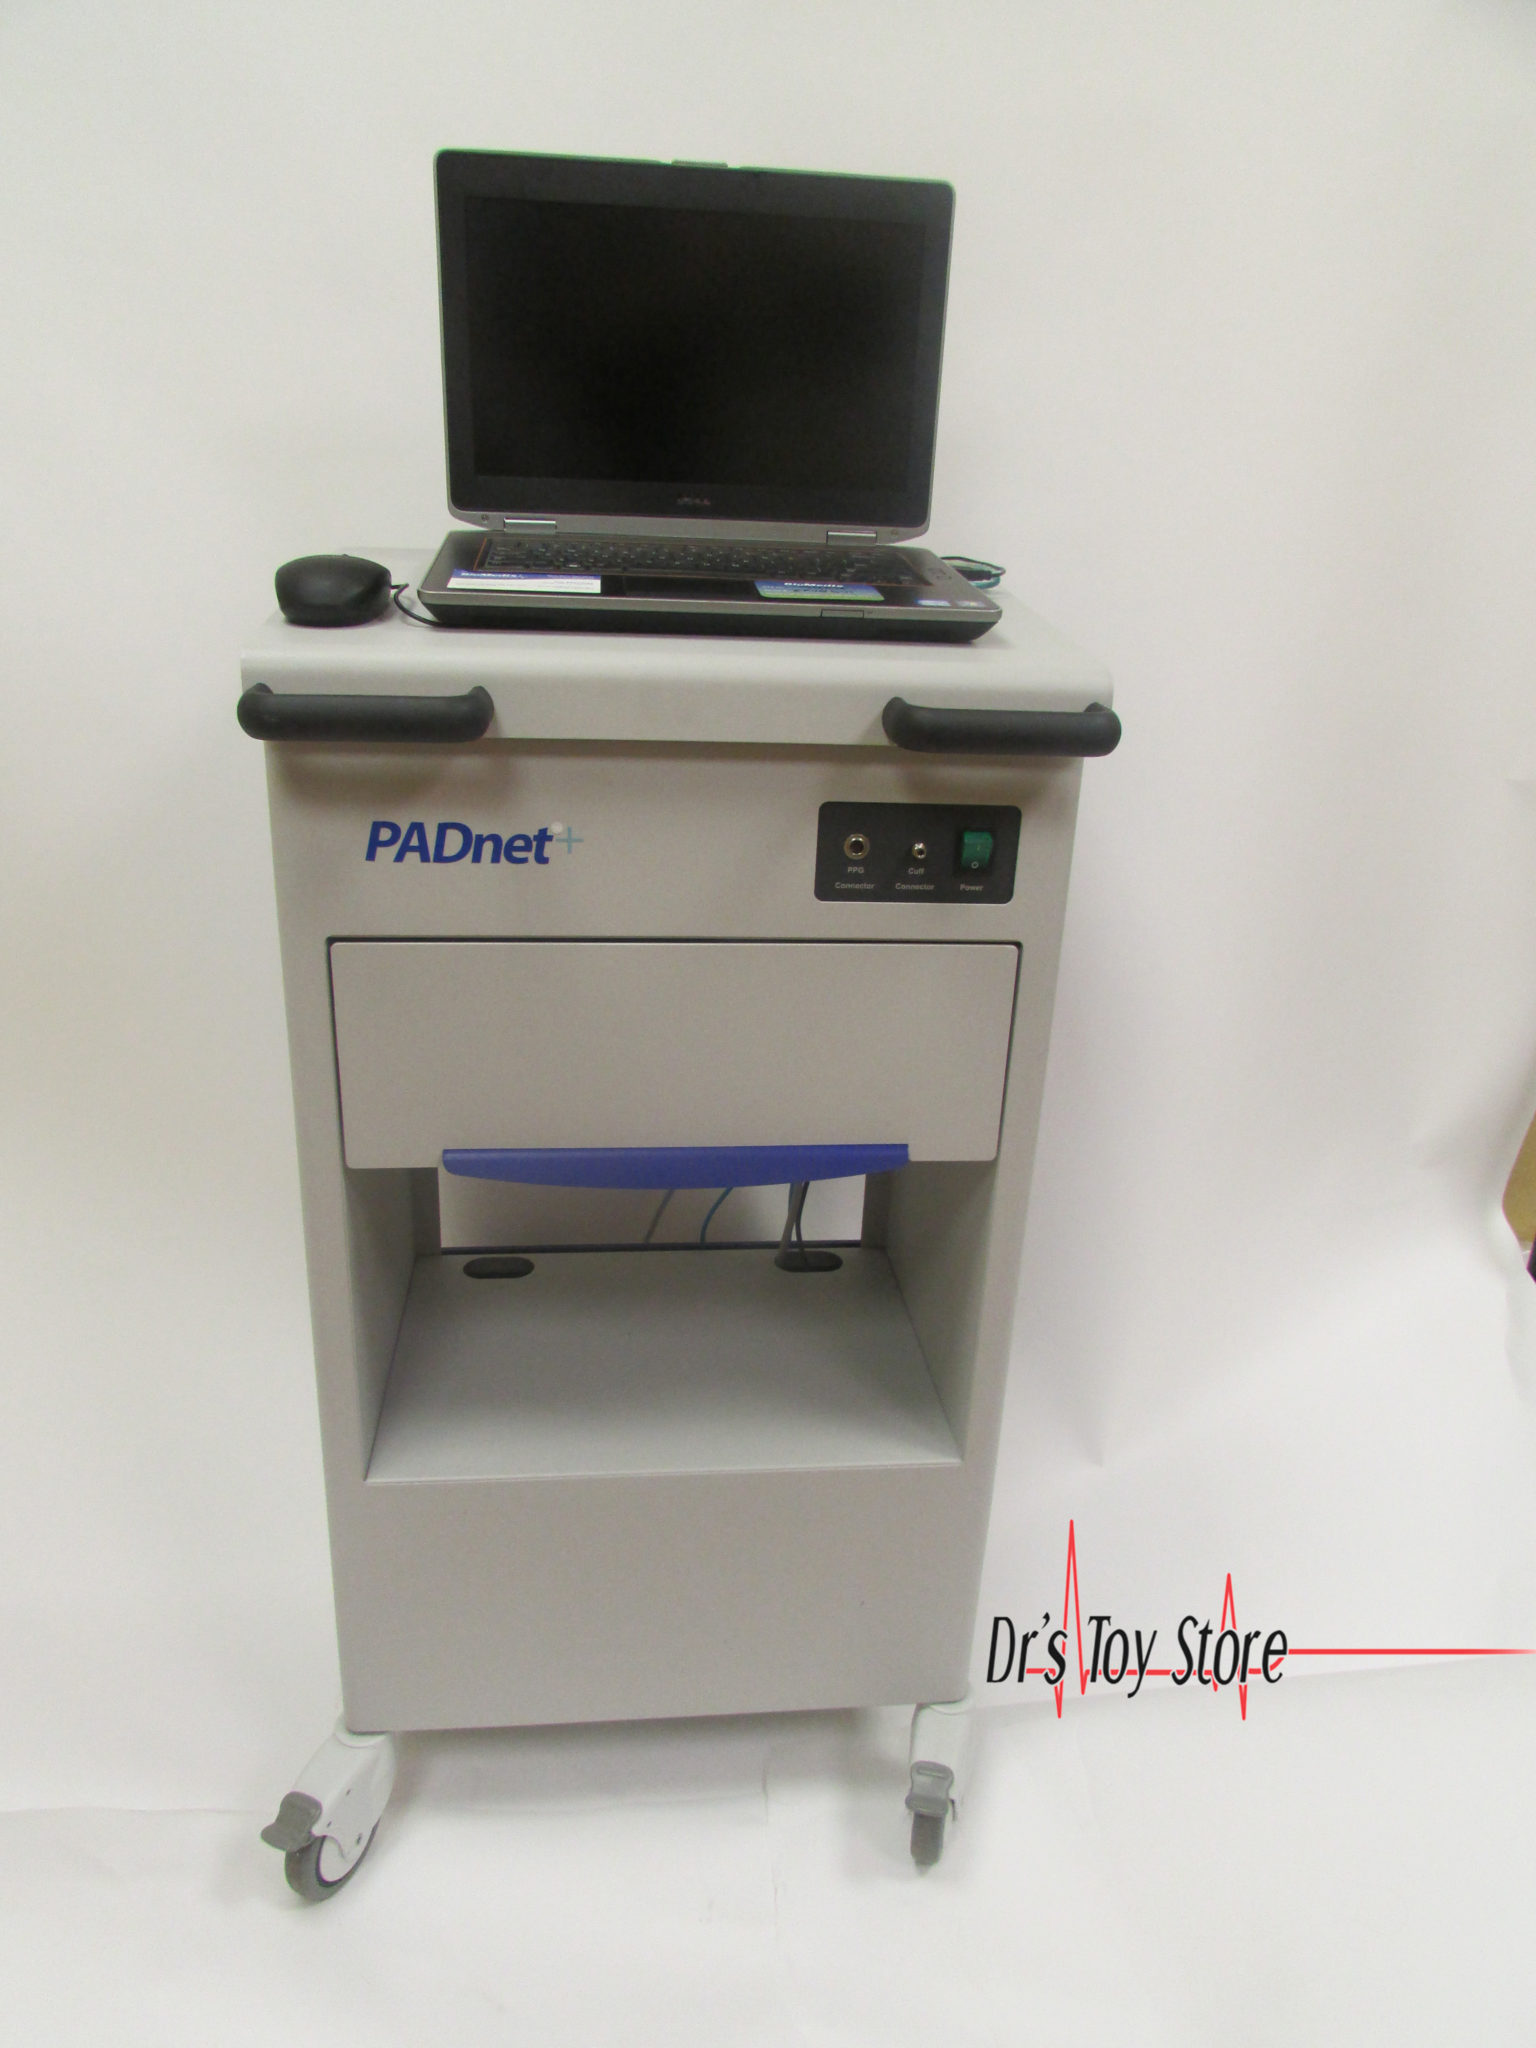 Biomedix Padnet Plus For Sale At Dr S Toy Store